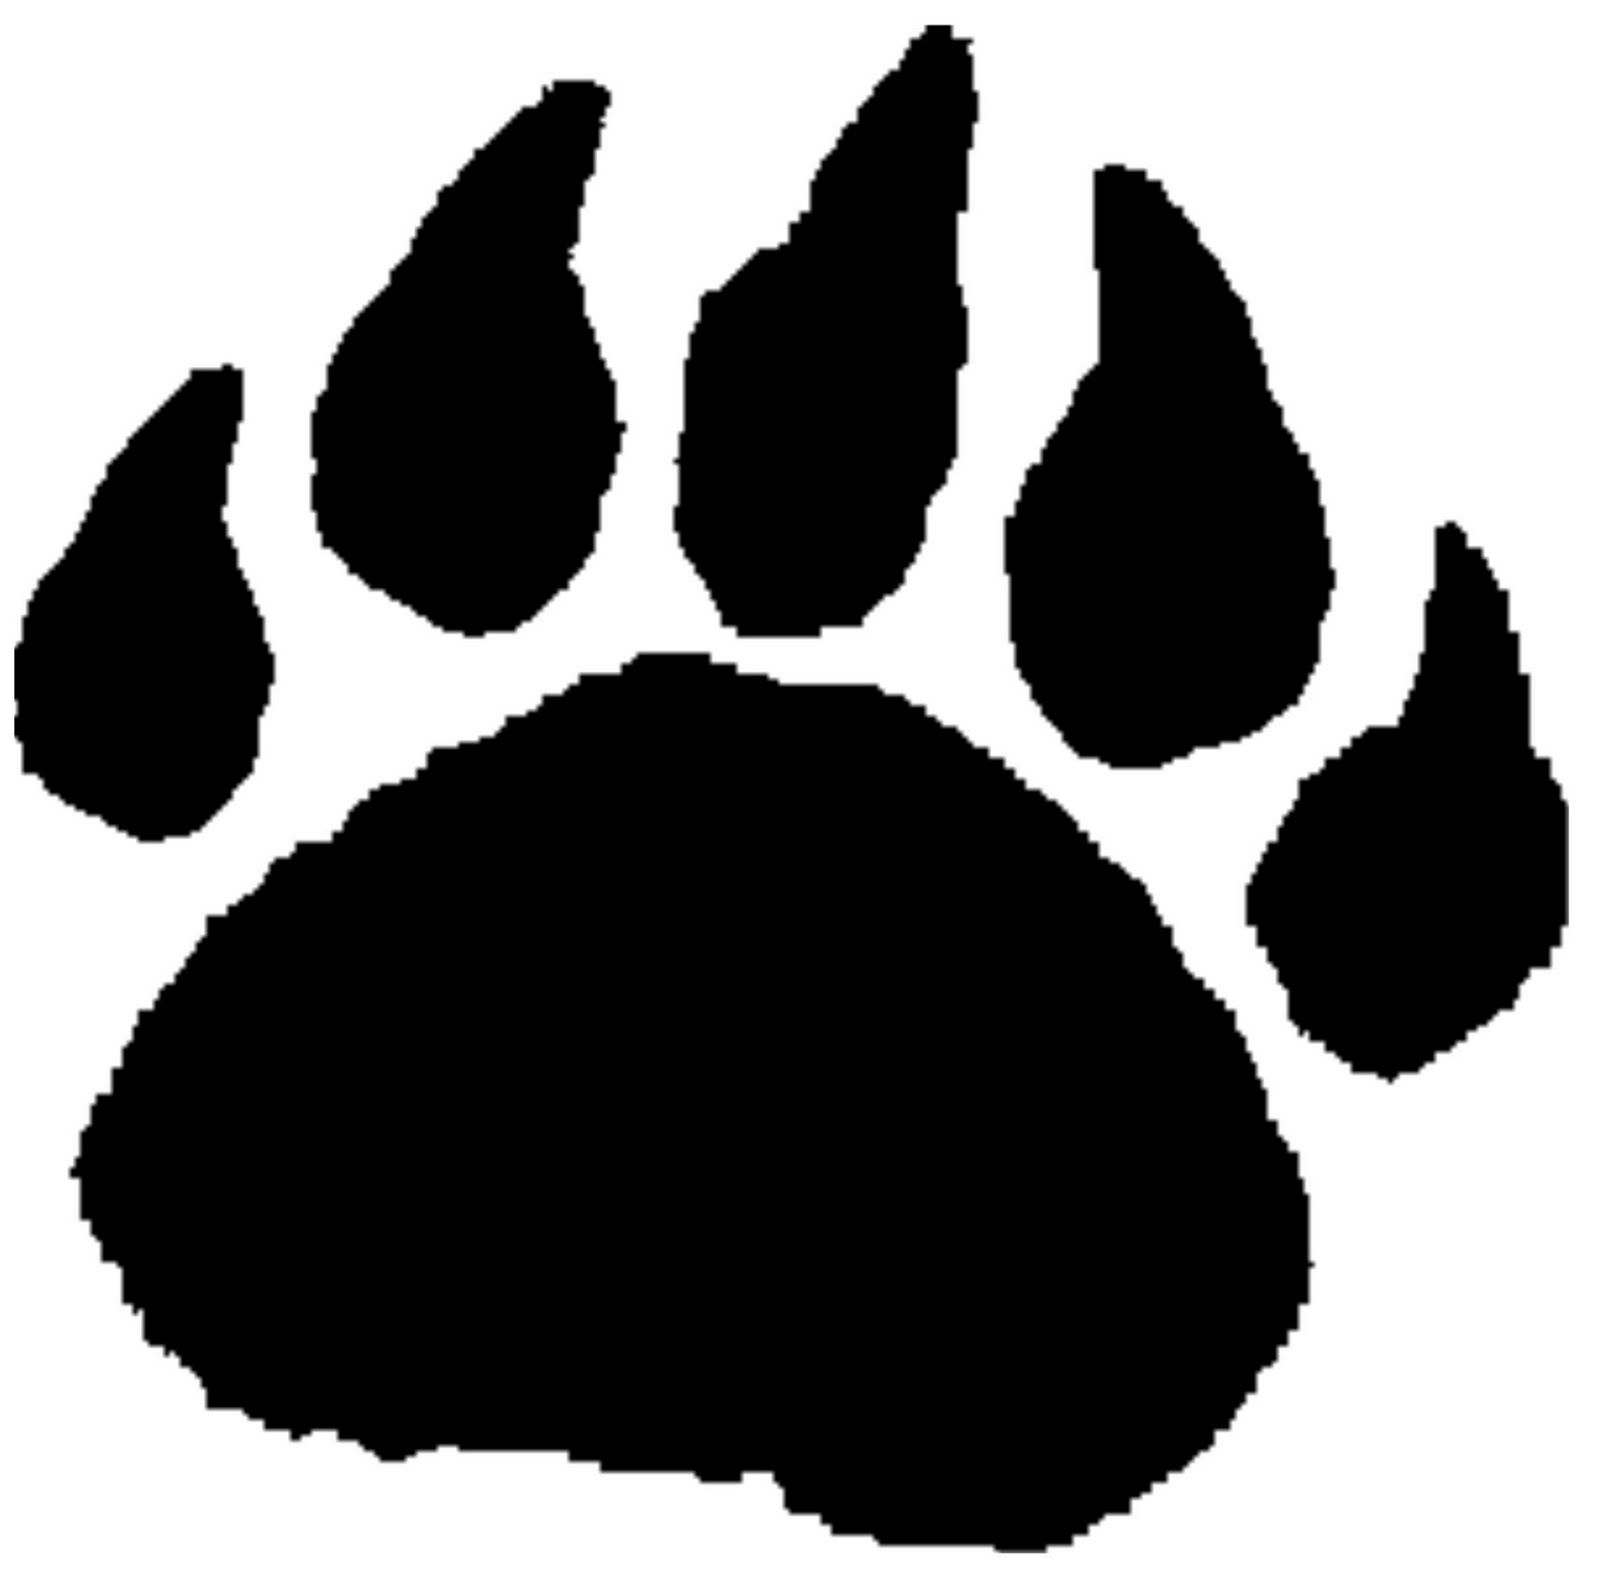 pin by andrea denker on andrea pinterest bear paws and bears rh pinterest com grizzly bear paw print clip art bear paw print clip art free